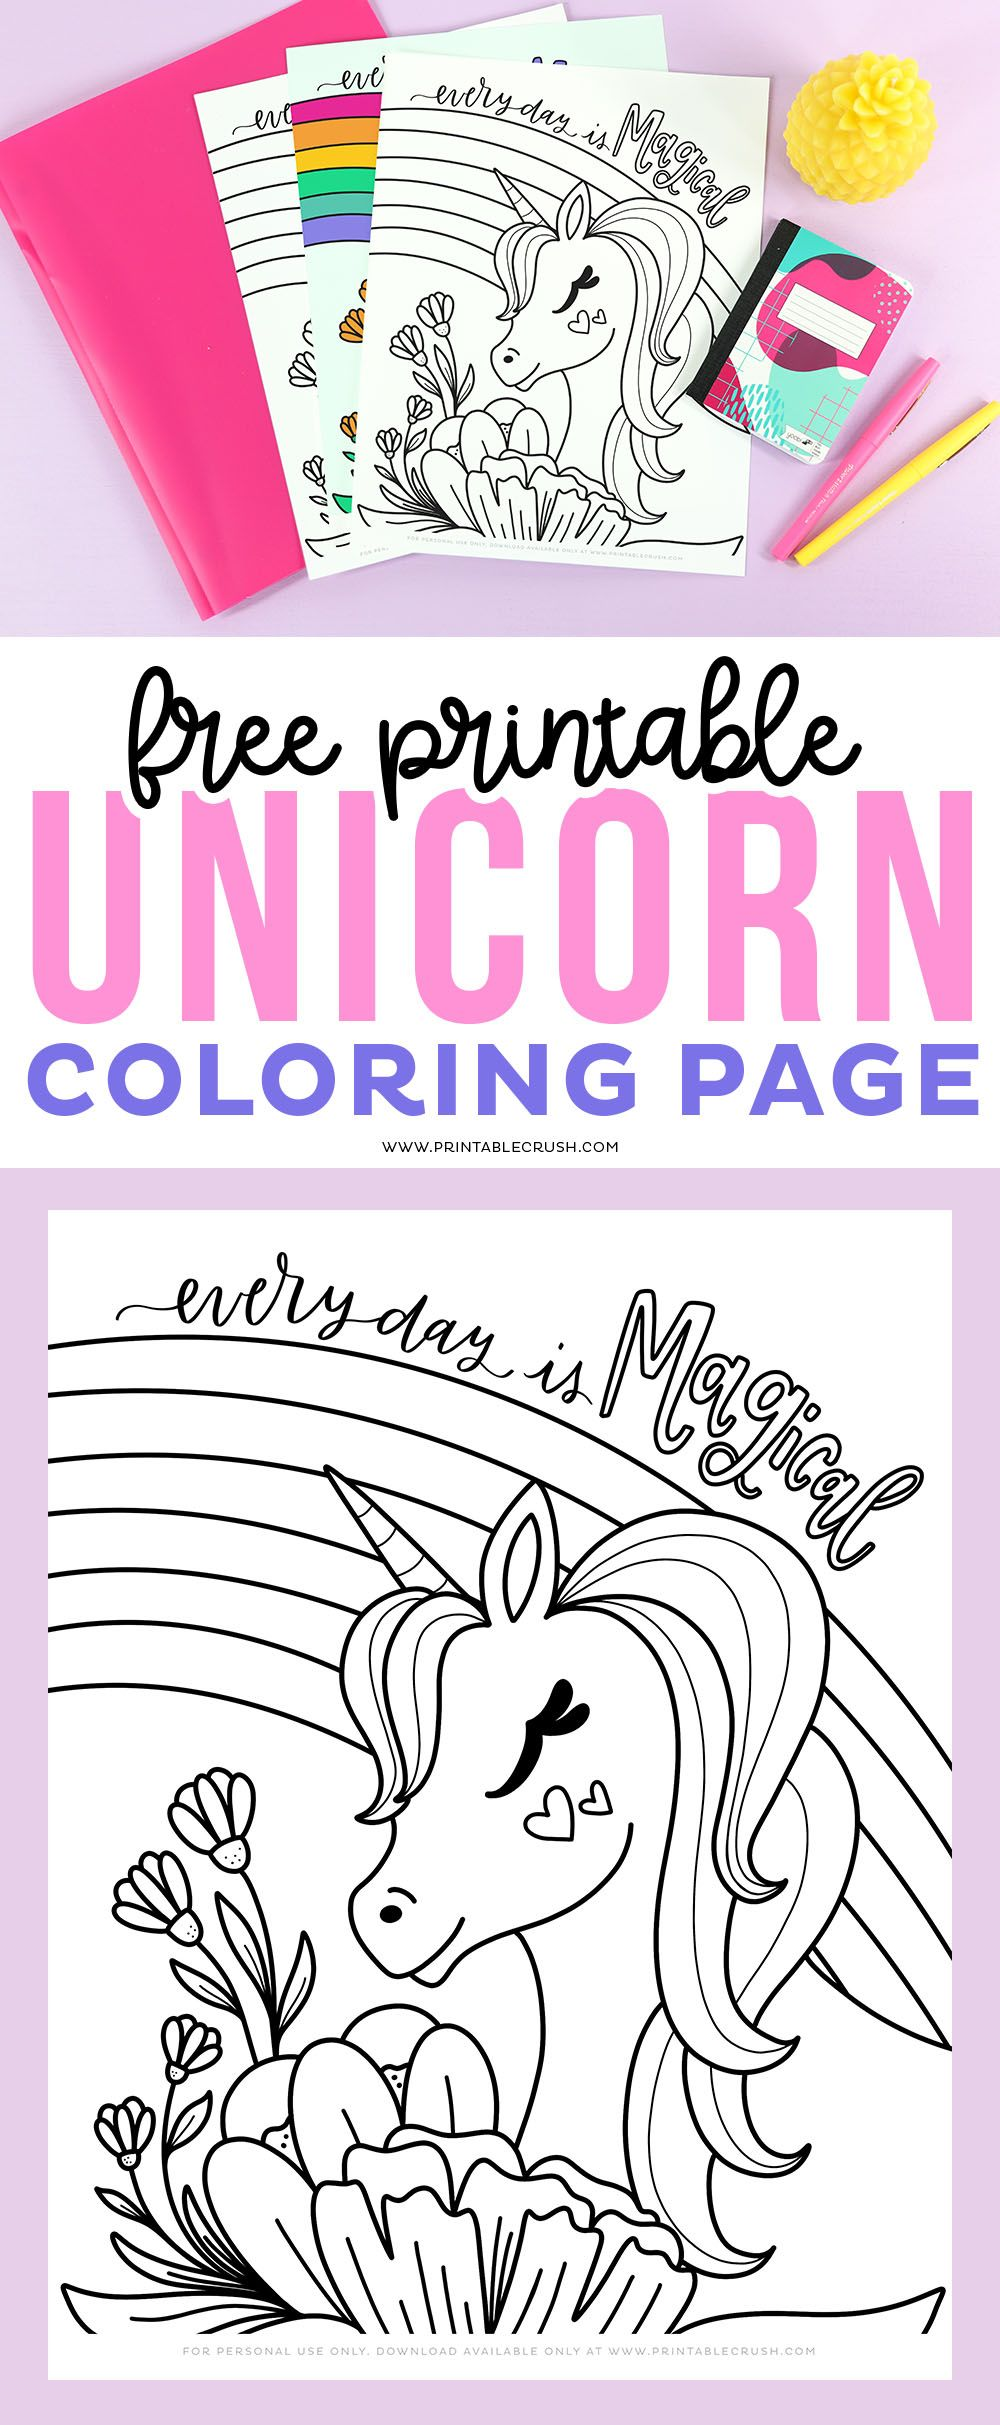 Free Printable Unicorn Coloring Page Unicorn Coloring Pages Unicorn Printables Free Printable Coloring